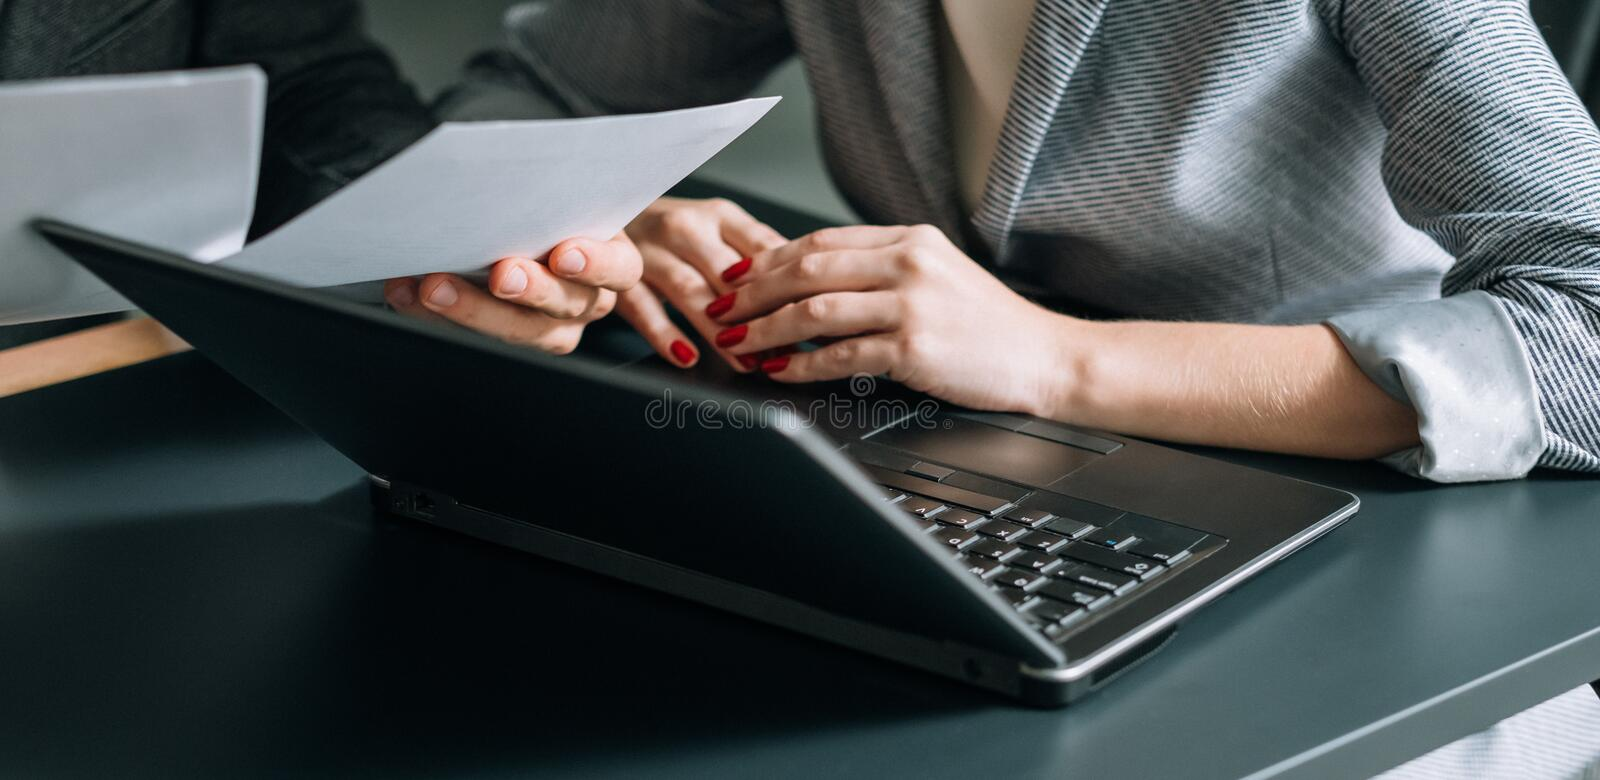 Coworking business matter office workplace laptop stock images